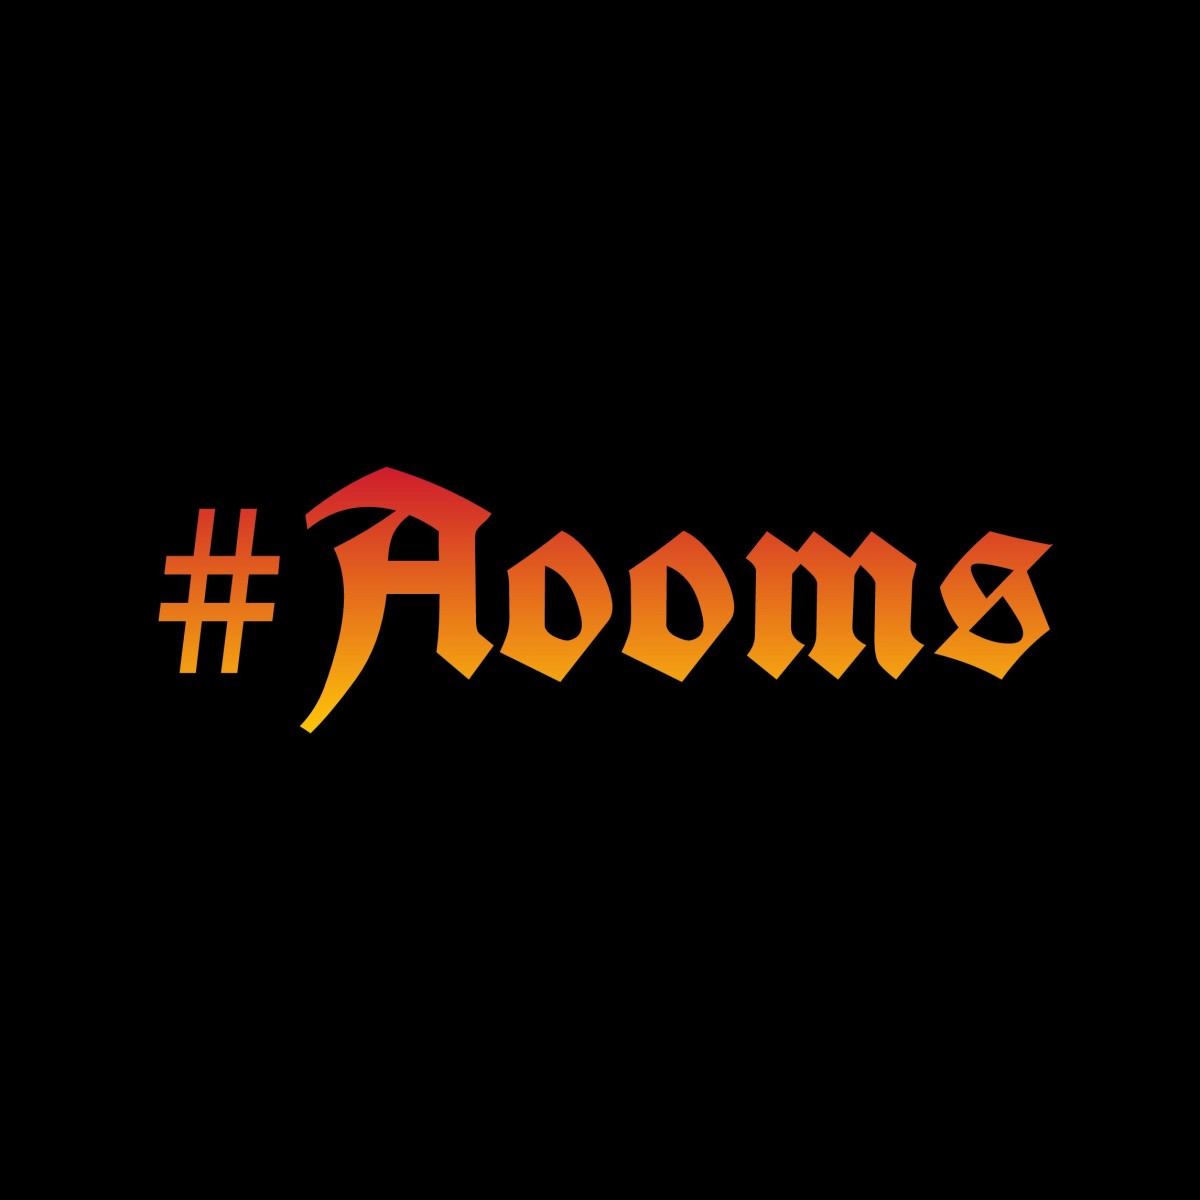 #Aooms: Nigerian sex stories, African tales and other non-erotic short stories written by Michael_Ghost #unigoss